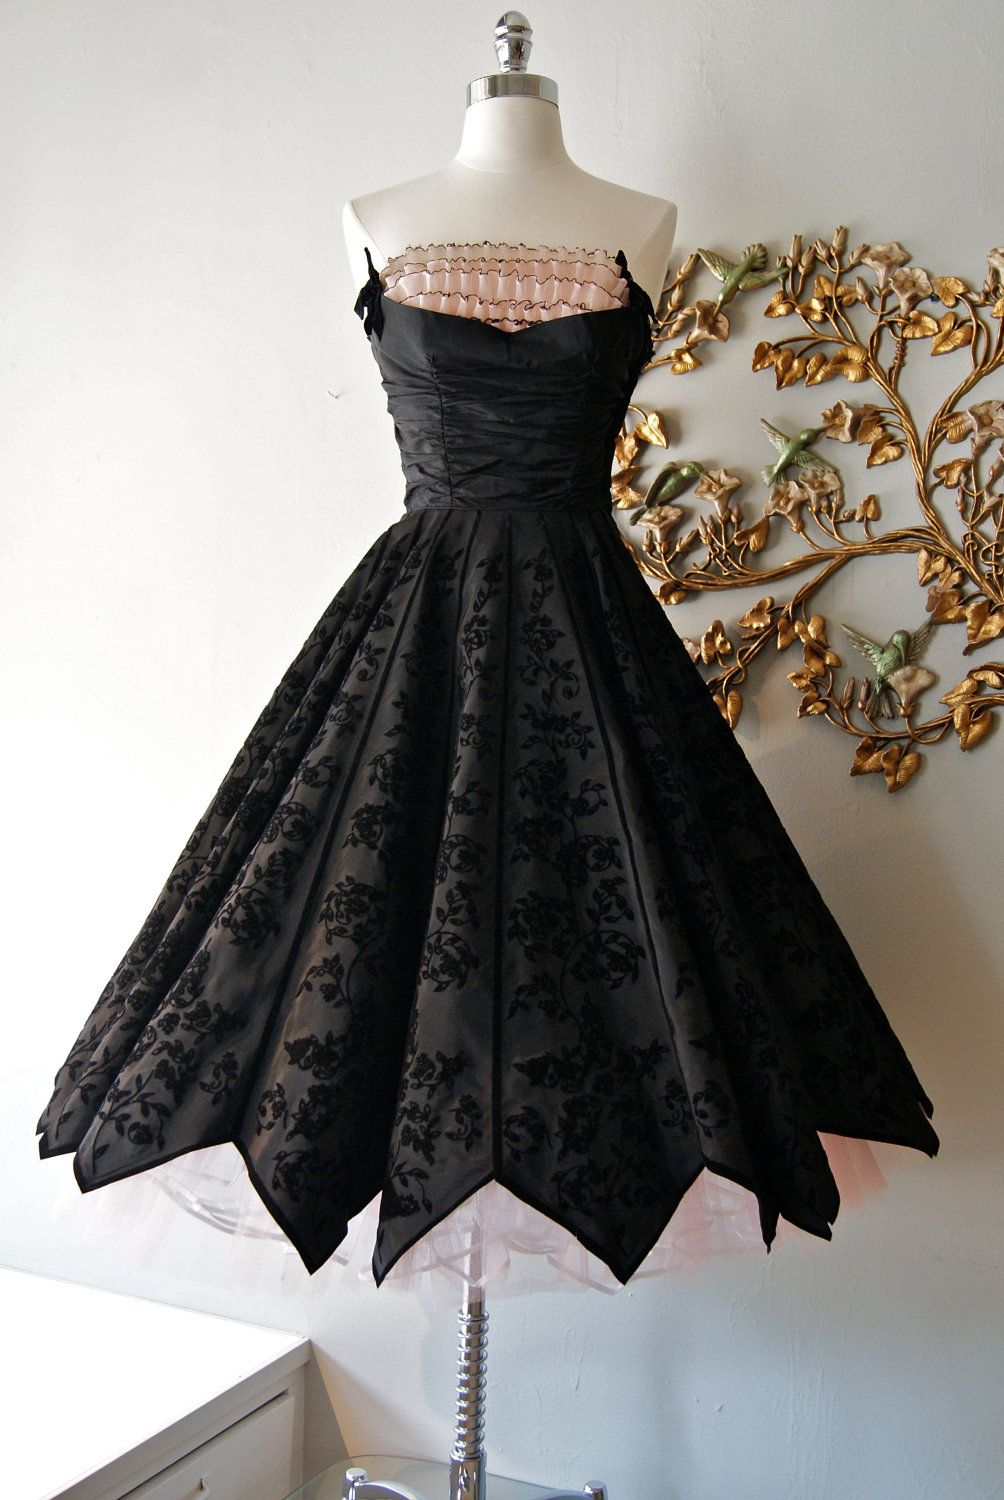 50s Party Dress 1950s Black And Pink Strapless Prom Dress Vintage Cocktail Dress 39 Cocktail Dress Vintage Vintage Clothing Boutique Prom Dresses Vintage [ 1500 x 1004 Pixel ]